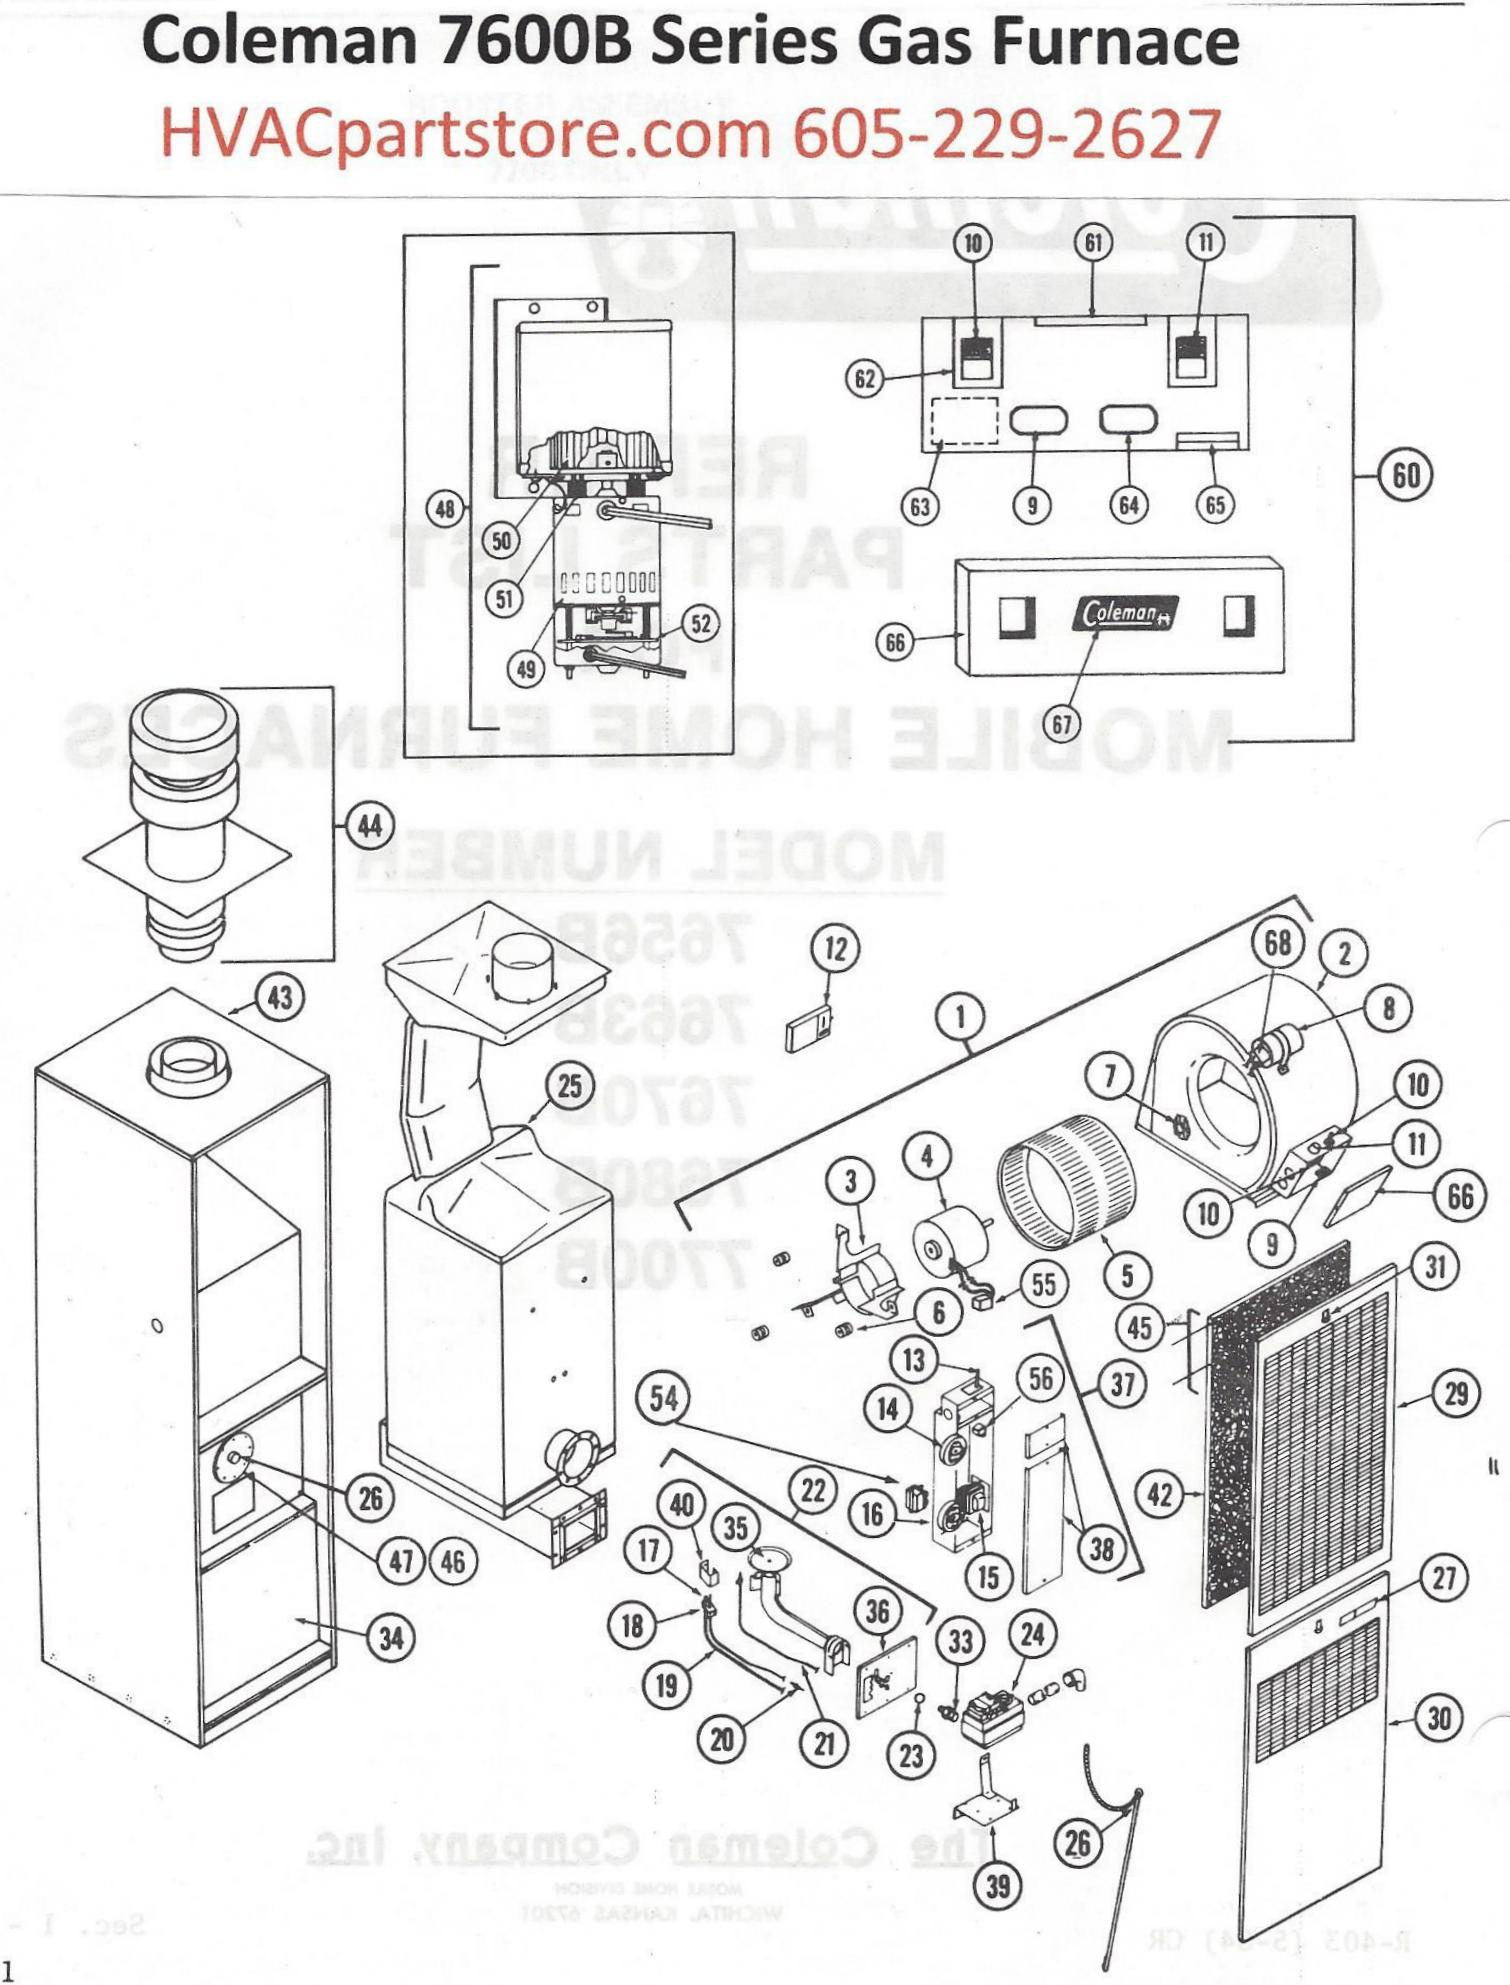 Coleman Furnace Wiring Diagram 30 Images Old Payne 7600bdiagram3087977773874111912 7656b856 Gas Parts Hvacpartstore At Cita